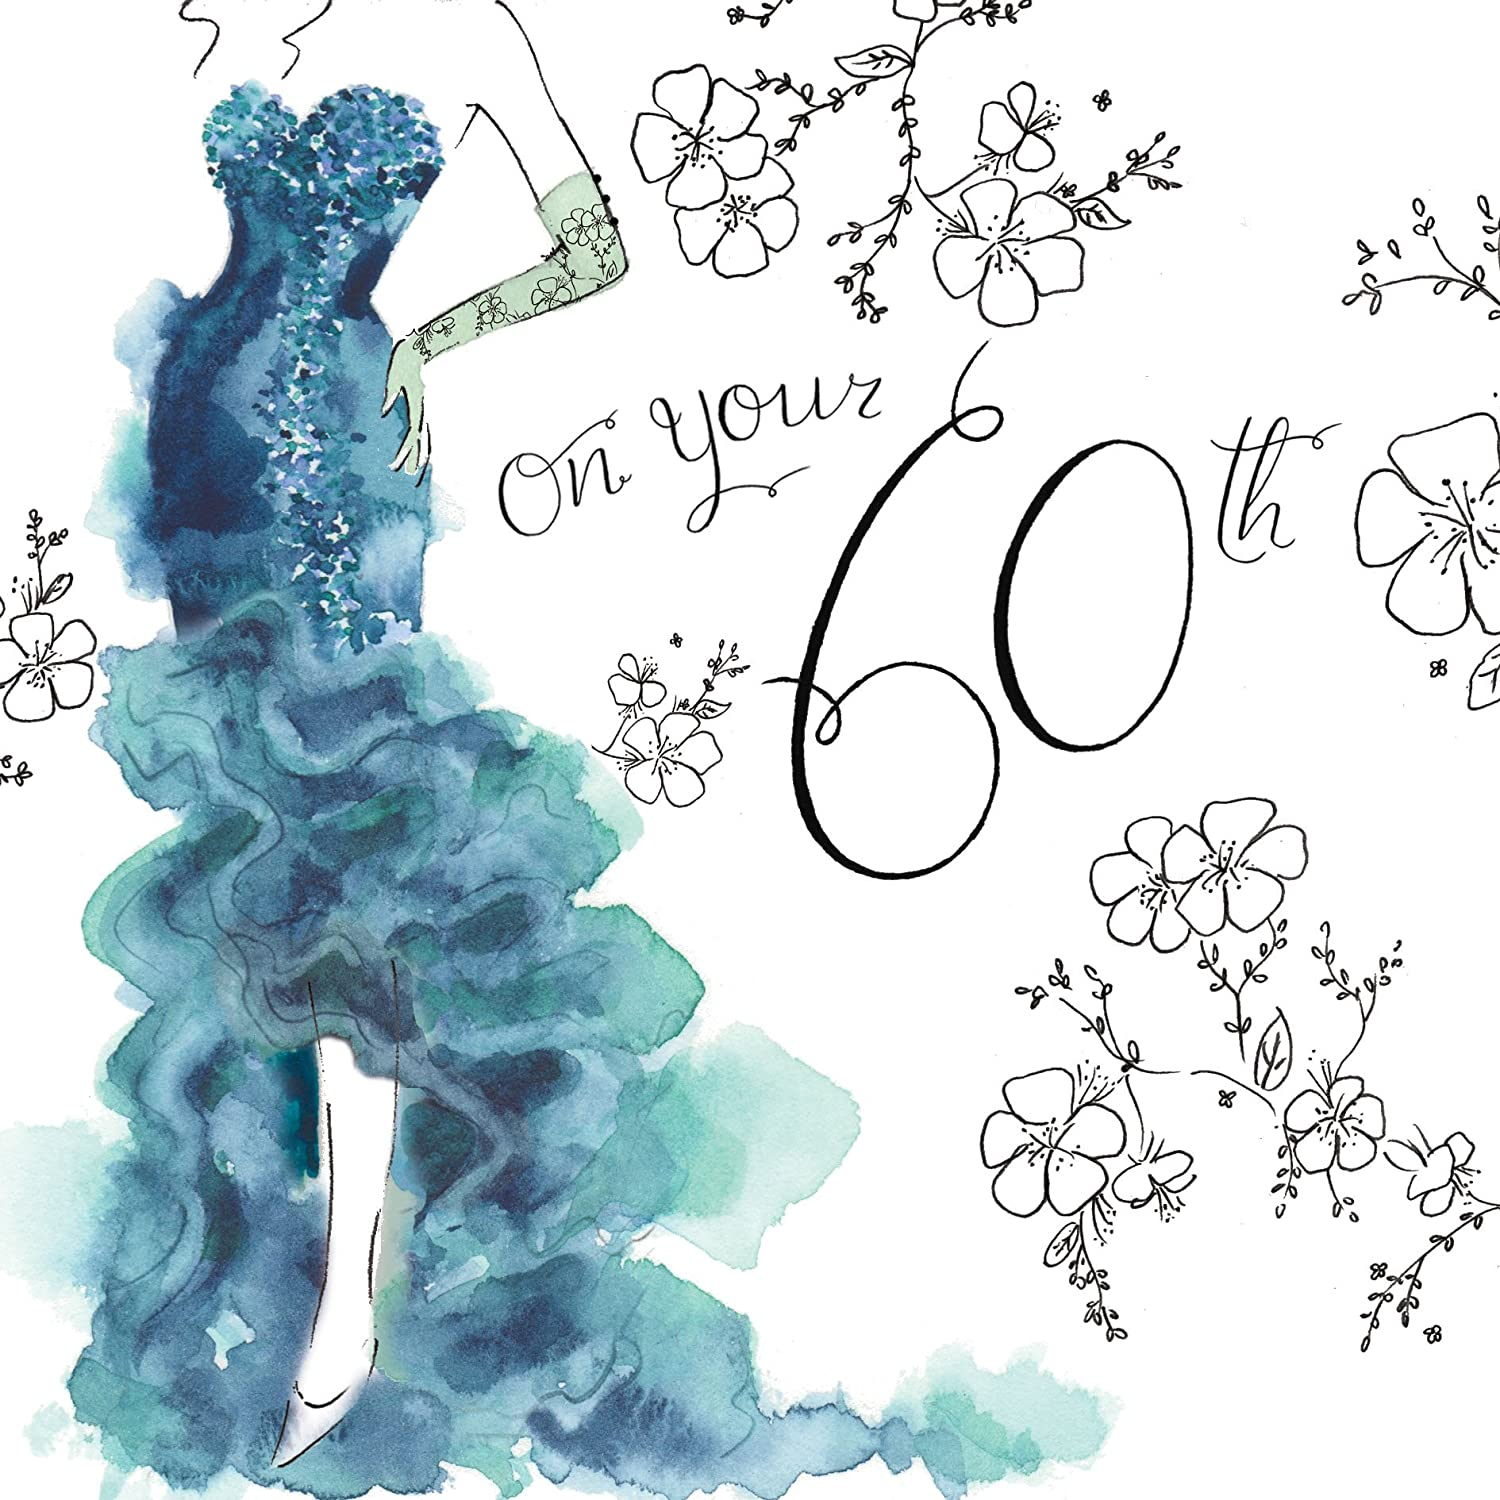 Twizler 60th Birthday Card For Her With Swarovski Crystal Finish Silver Foiling Unique Watercolour Effect And Cocktail Dress